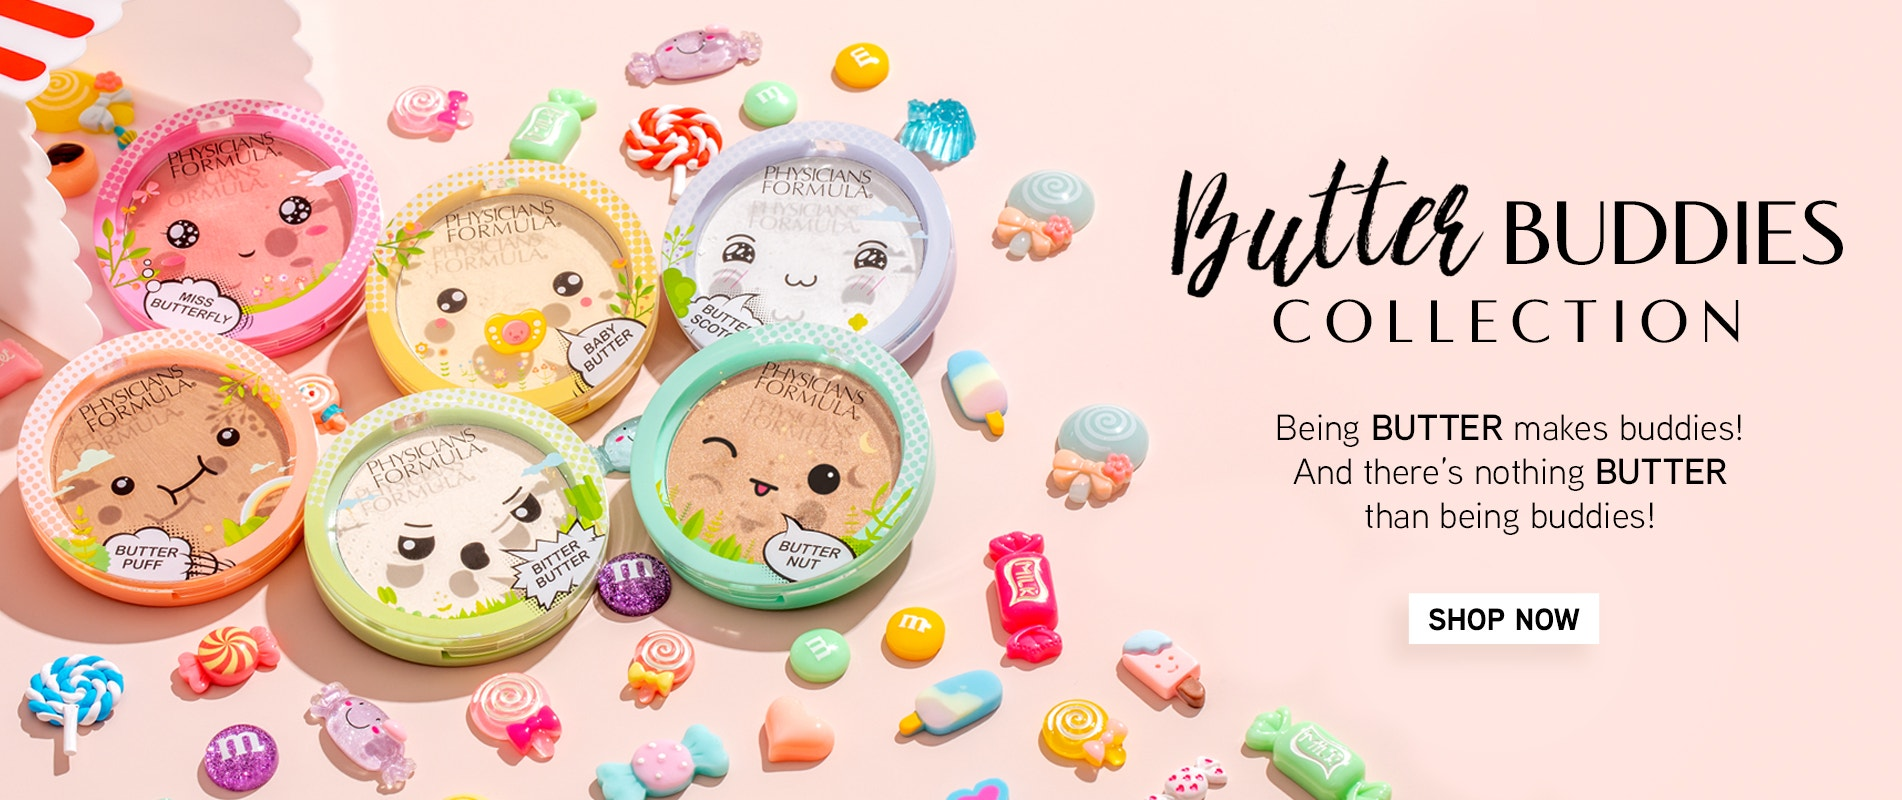 Physicians Formula | Butter Buddies Collection | Being butter makes buddies! And there's nothing butter than being buddies | CLICK HERE TO SHOP NOW